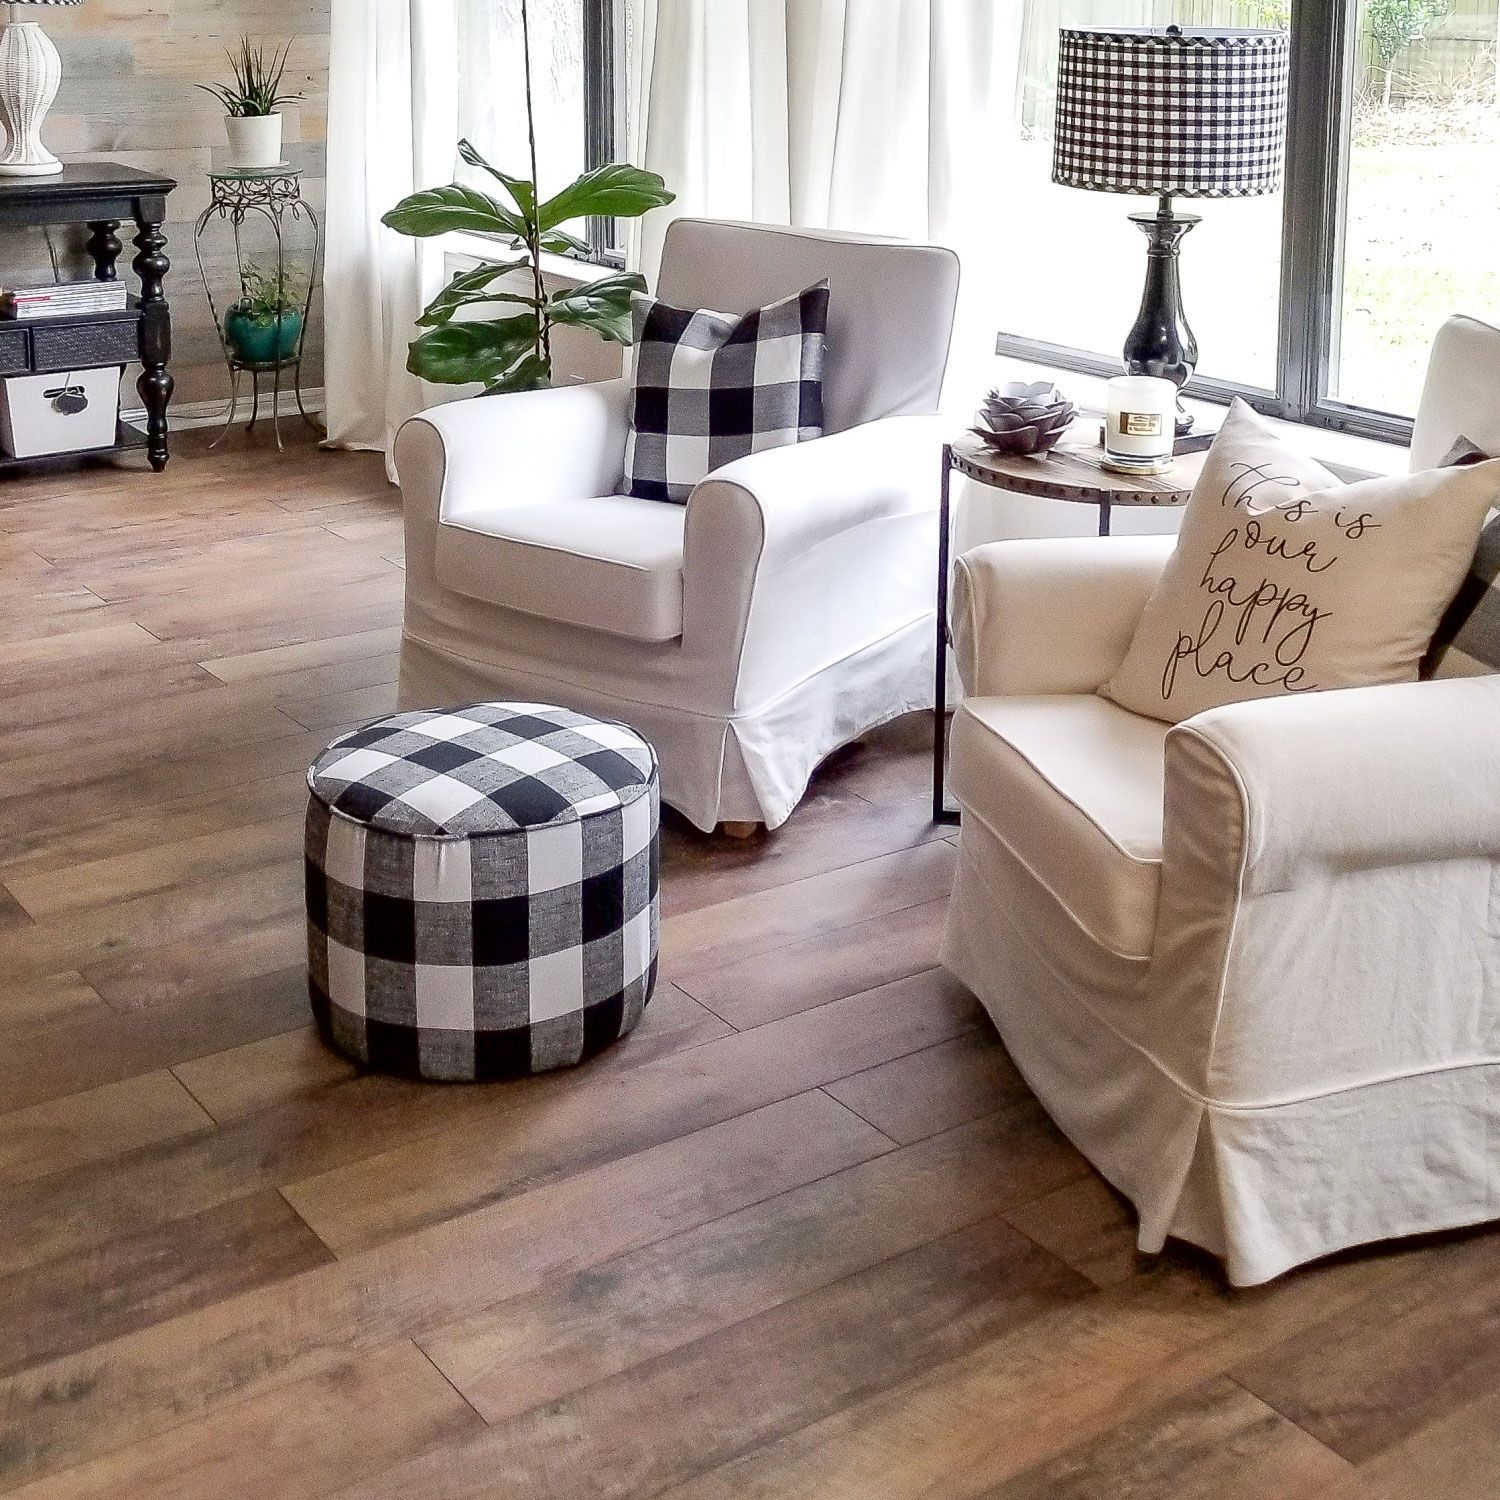 Select Surfaces Driftwood Laminate Flooring Sam S Club Laminate Flooring Colors Laminate Flooring Floor Installation